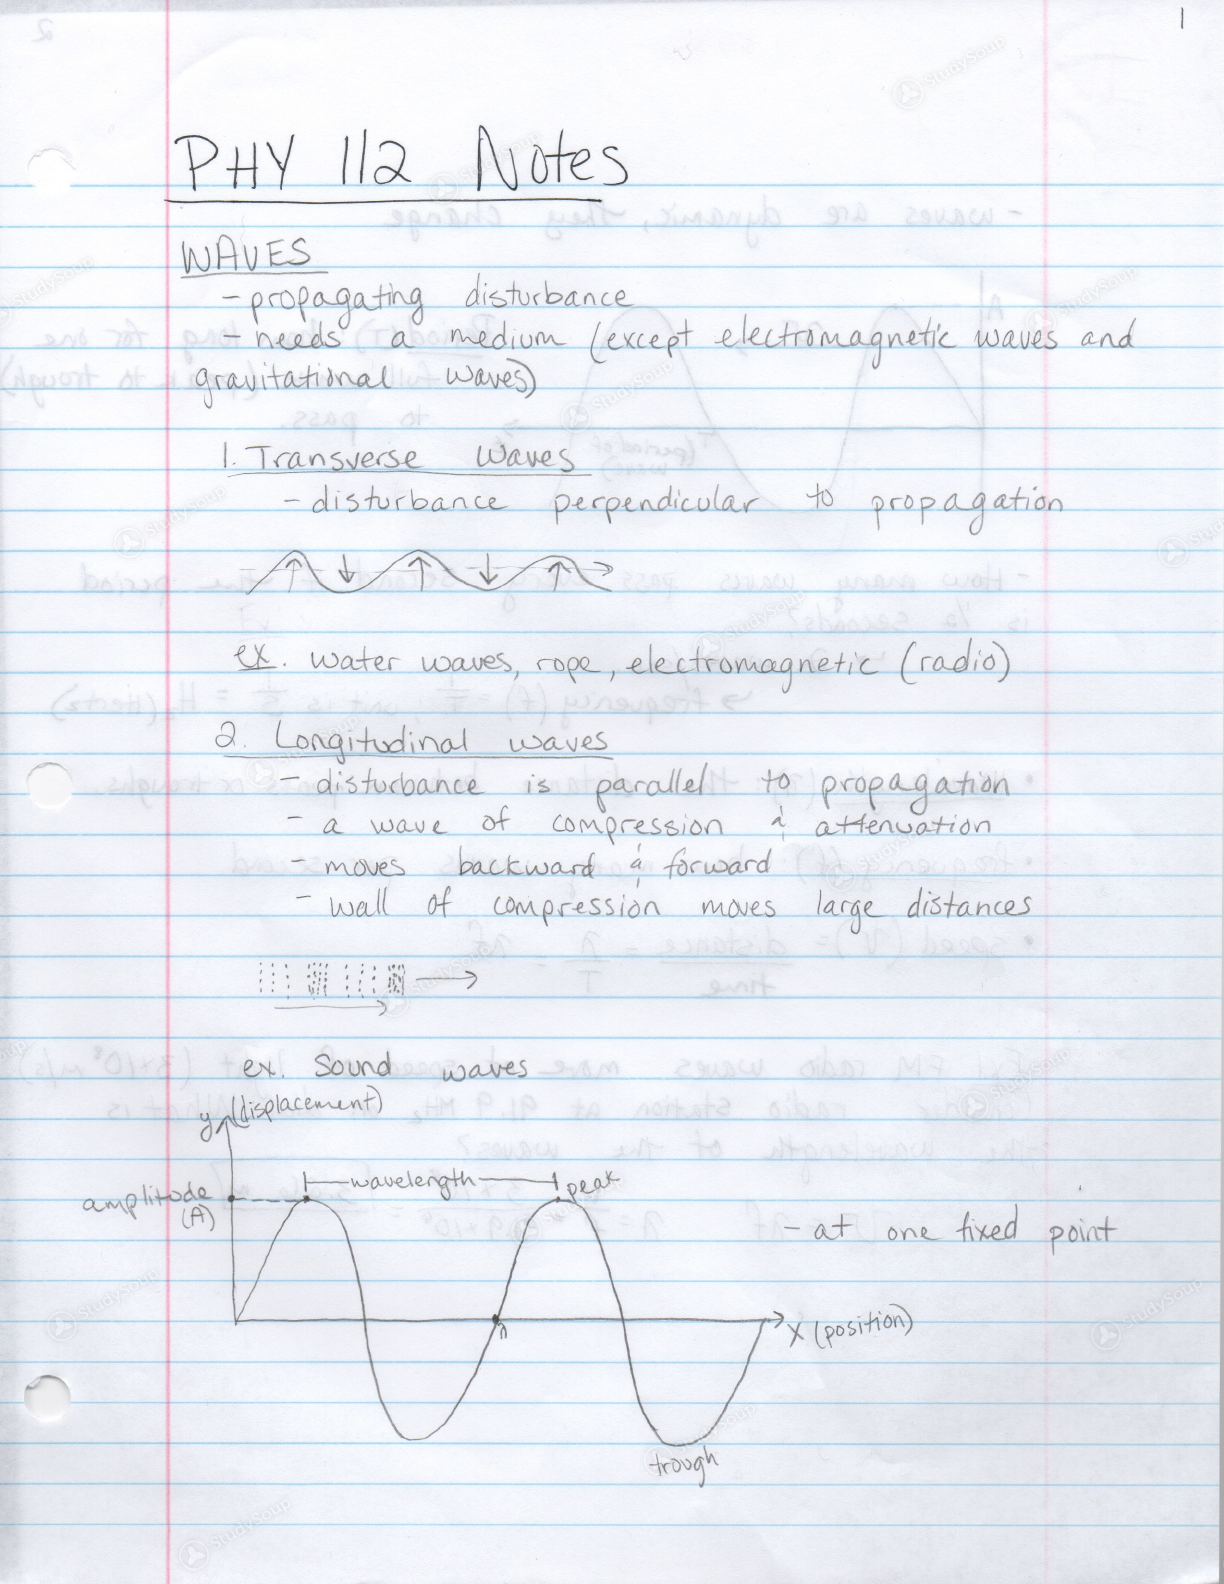 URI - PHY 112 - PHY 112 notes - Class Notes | StudySoup